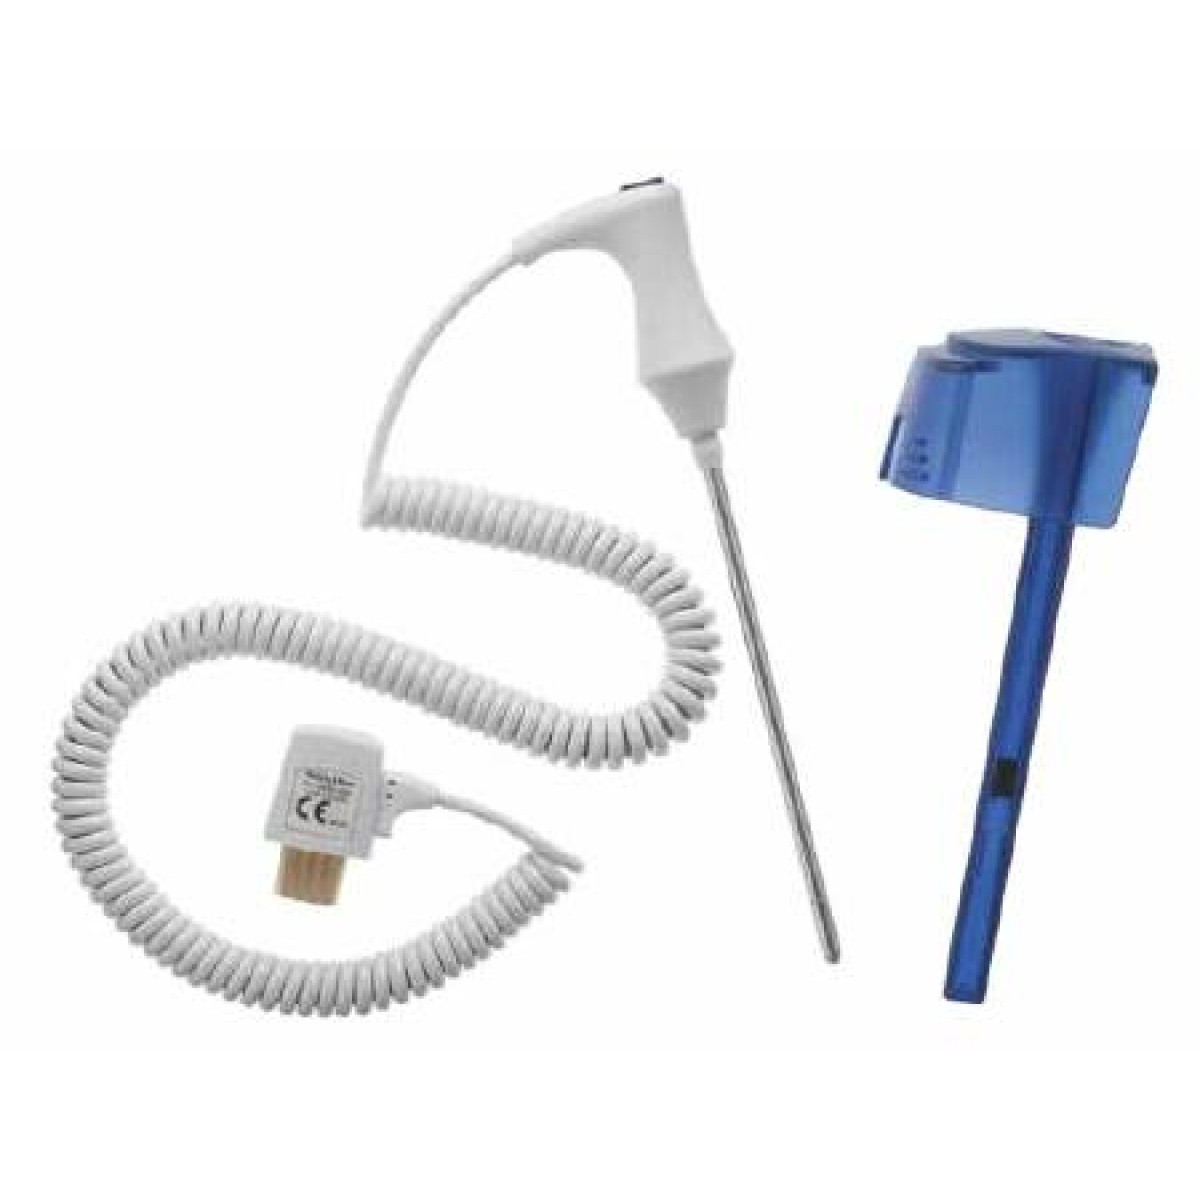 M14 1 5 Well For Temp Probe : Suretemp probe and well kit